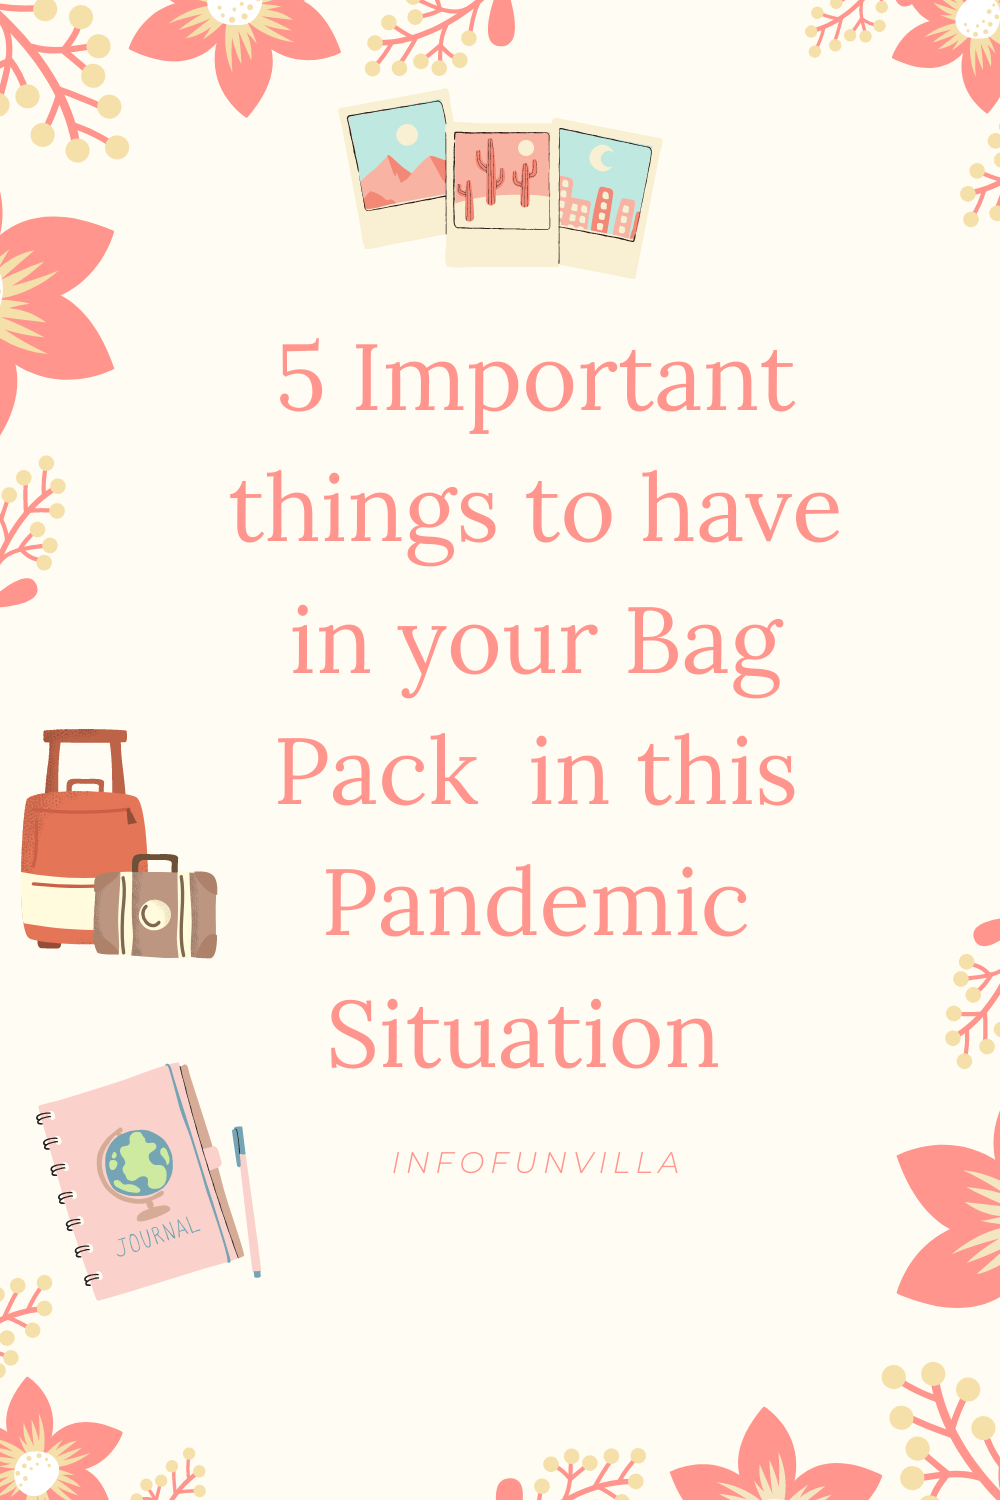 5 important things for travel bag pack in this pandemic.